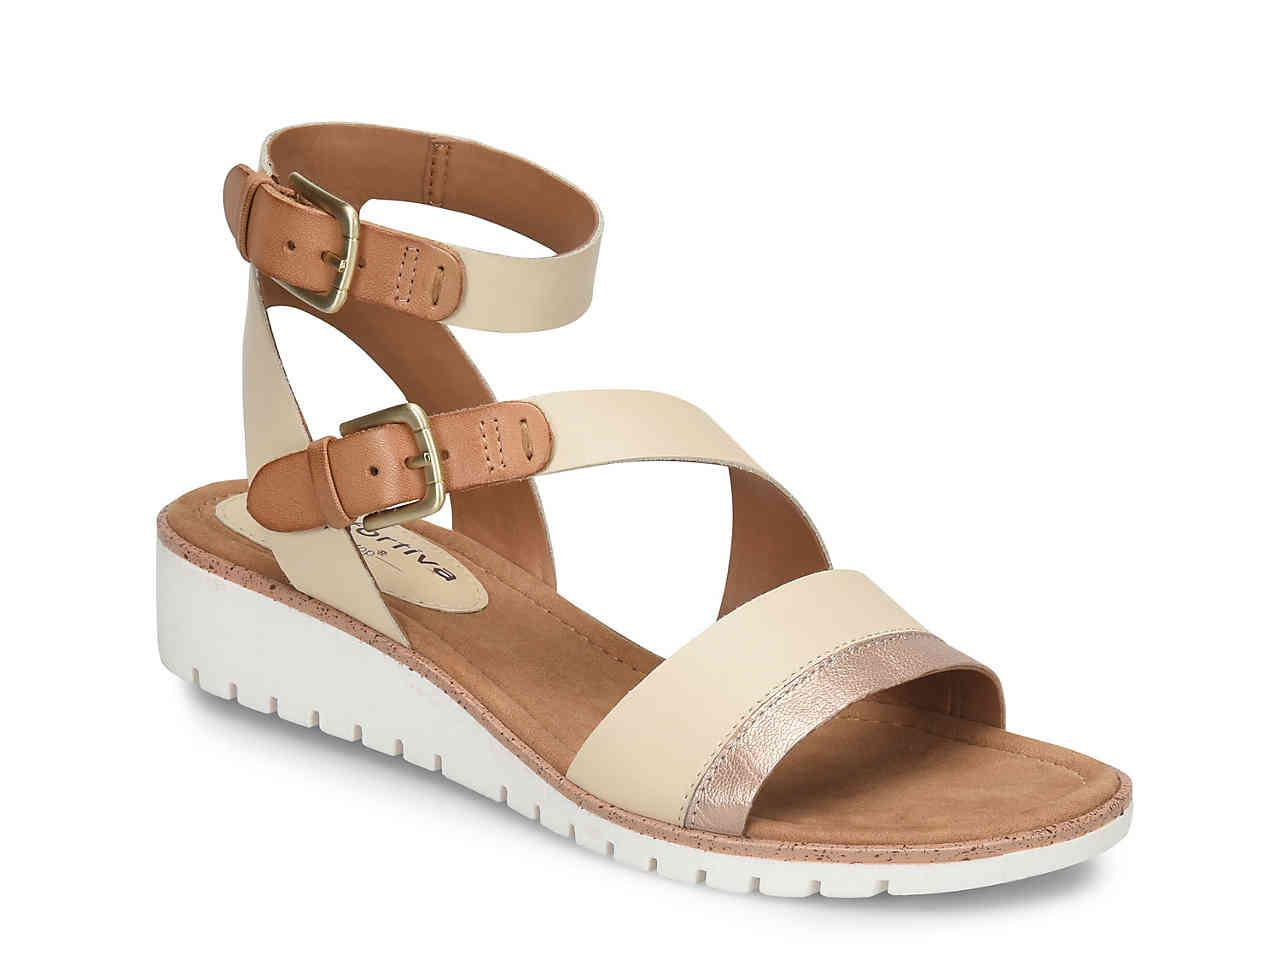 Lyst - Comfortiva Corvina Wedge Sandal in Brown dd149860ed